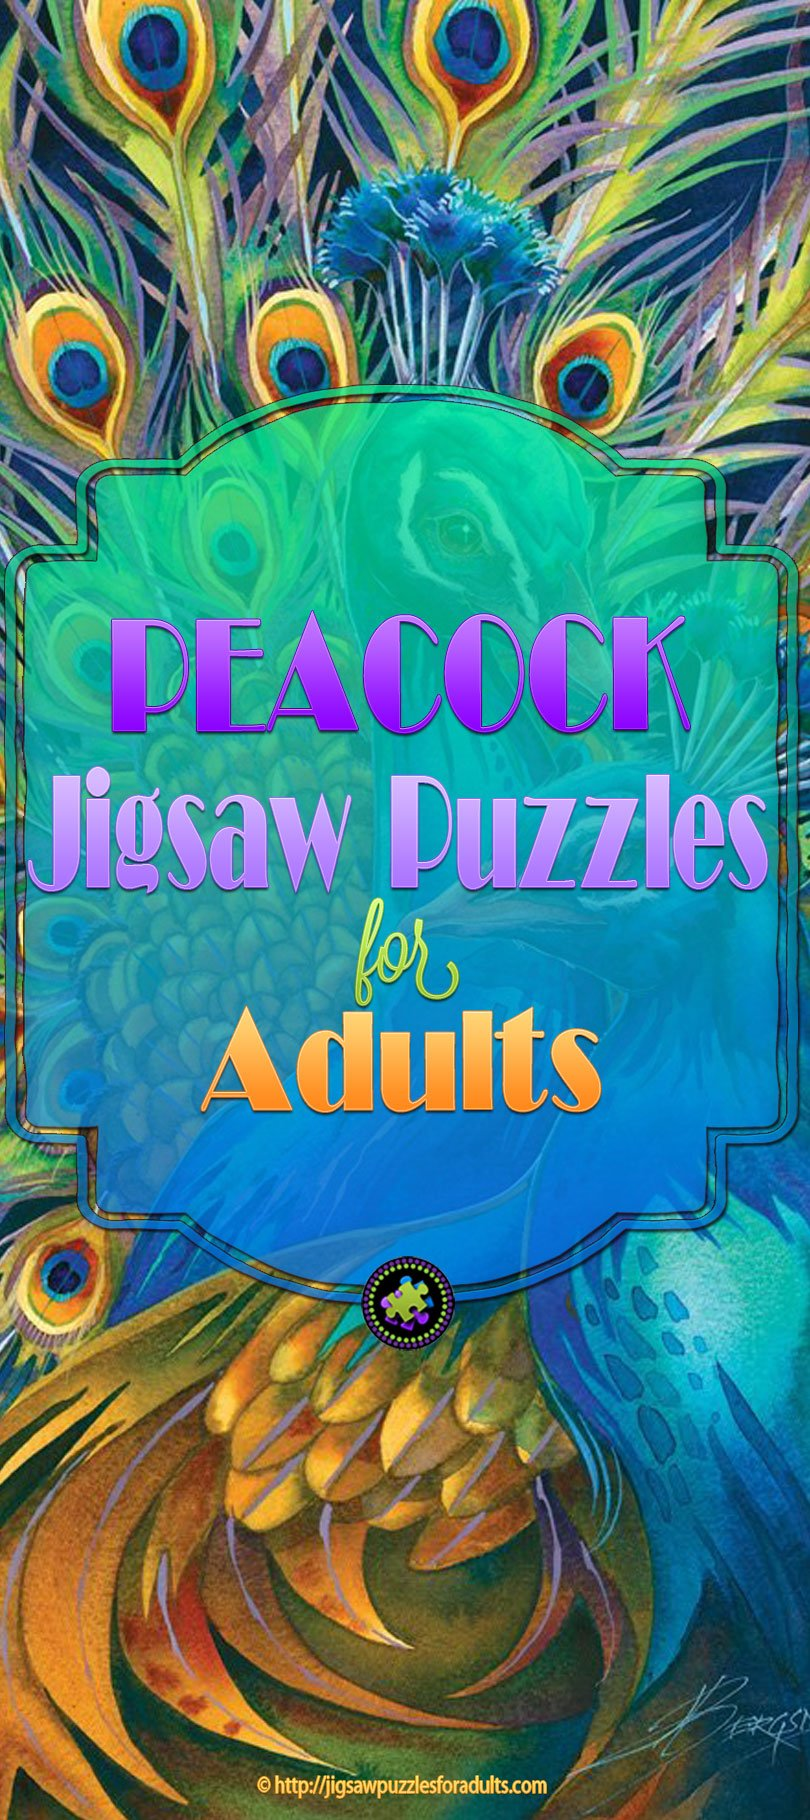 Peacock Jigsaw Puzzles